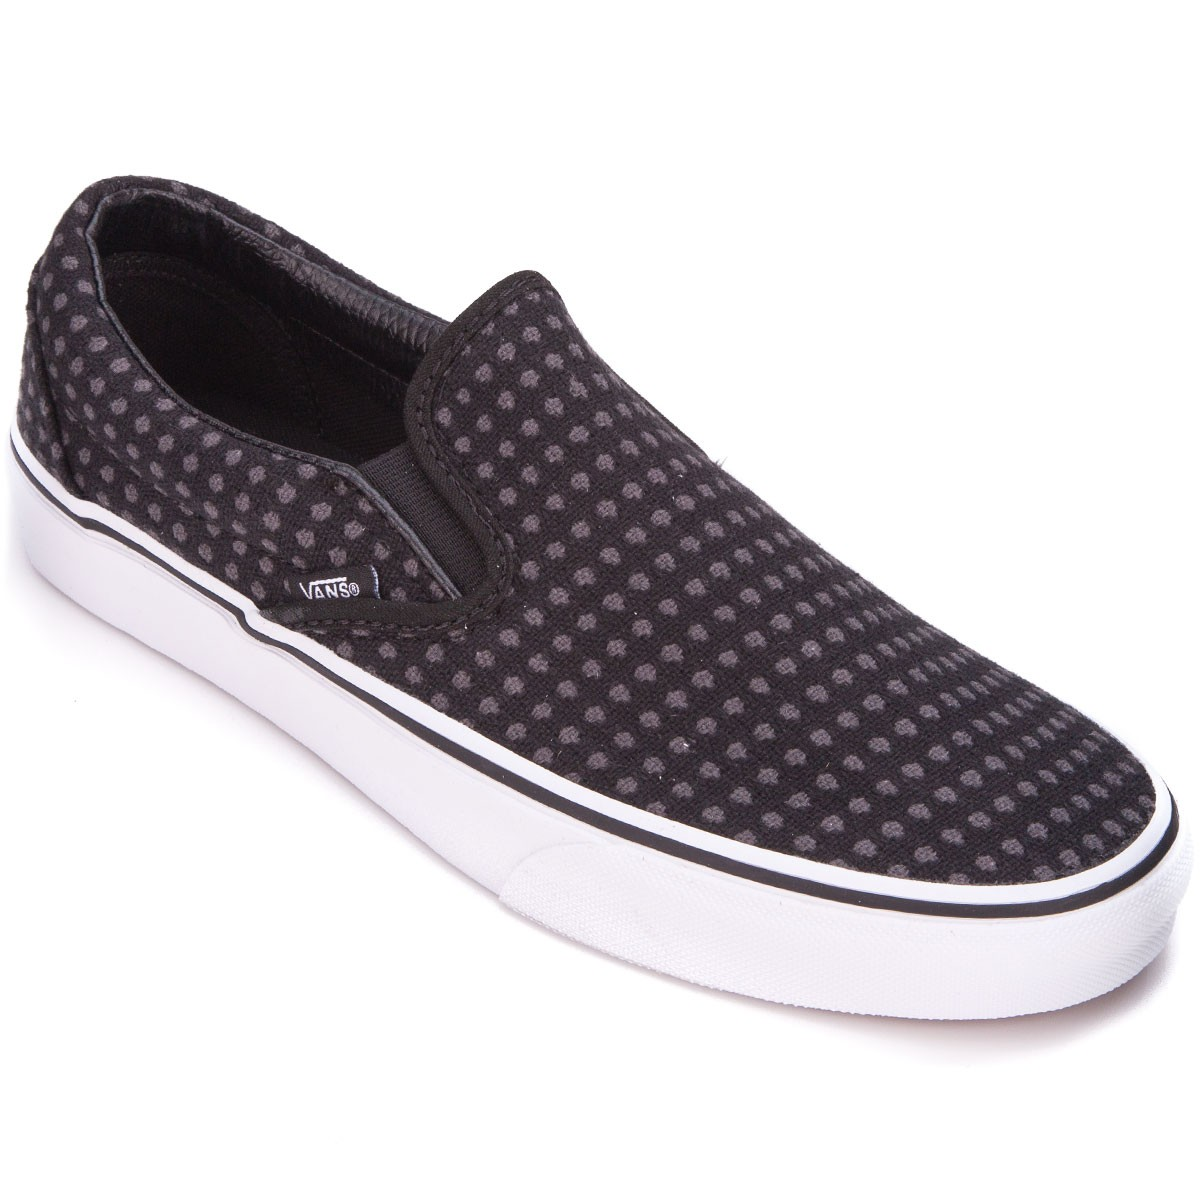 Vans Classic Slip-On Womens Shoes - Wool Dots Black White - 3.5 6119ad465